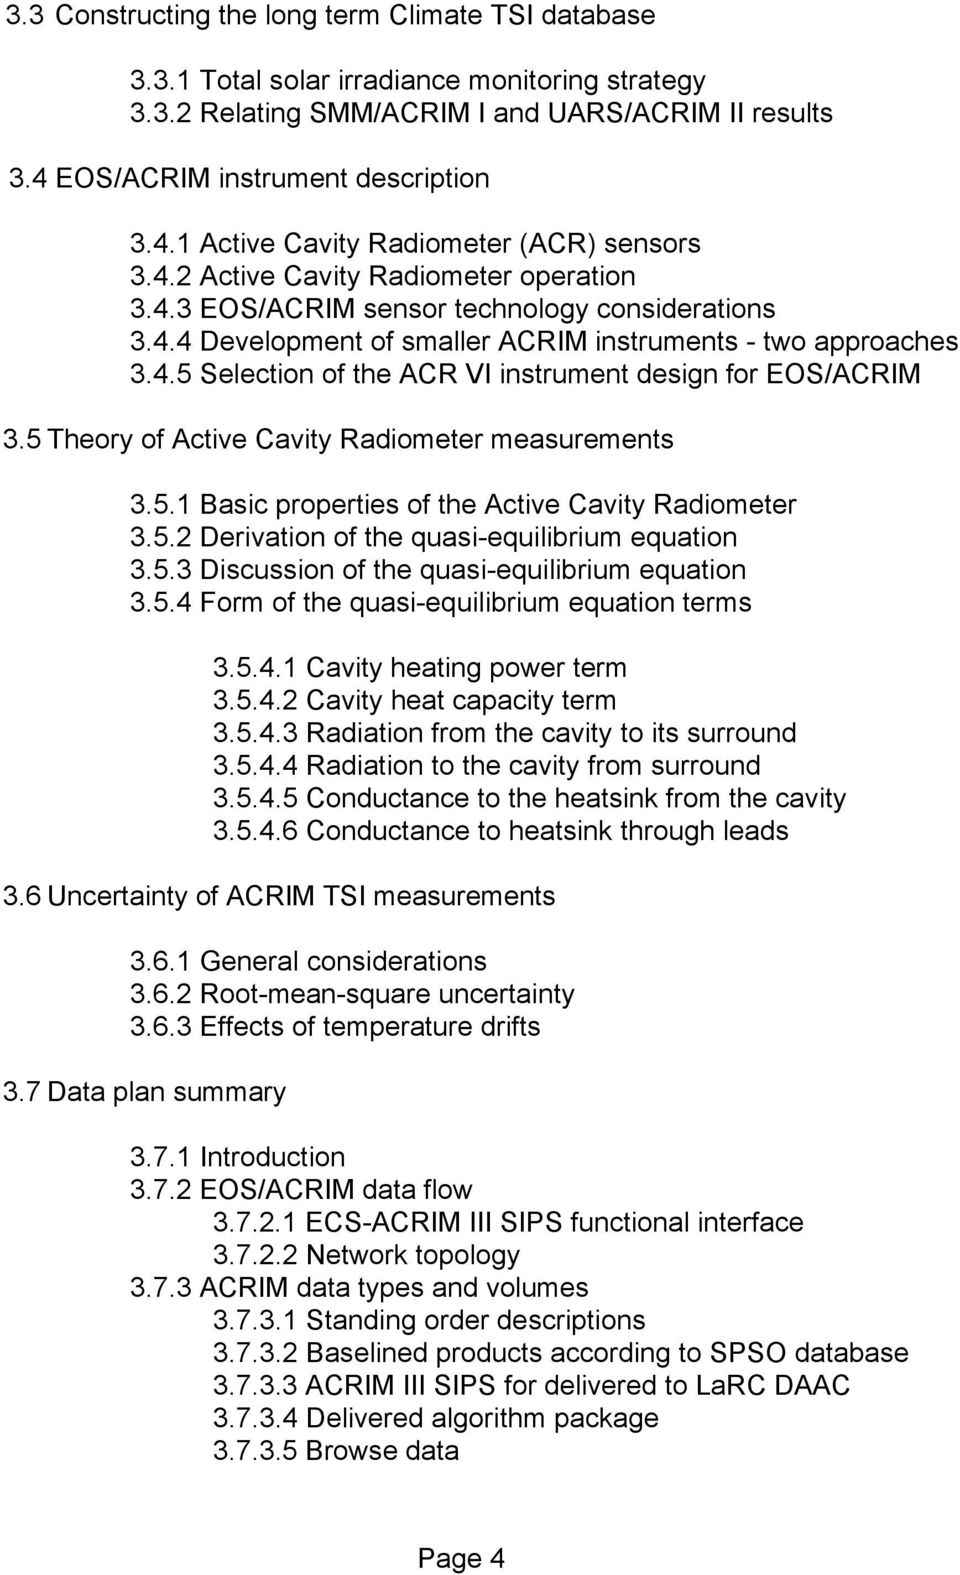 4.5 Selection of the ACR VI instrument design for EOS/ACRIM 3.5 Theory of Active Cavity Radiometer measurements 3.5.1 Basic properties of the Active Cavity Radiometer 3.5.2 Derivation of the quasi-equilibrium equation 3.